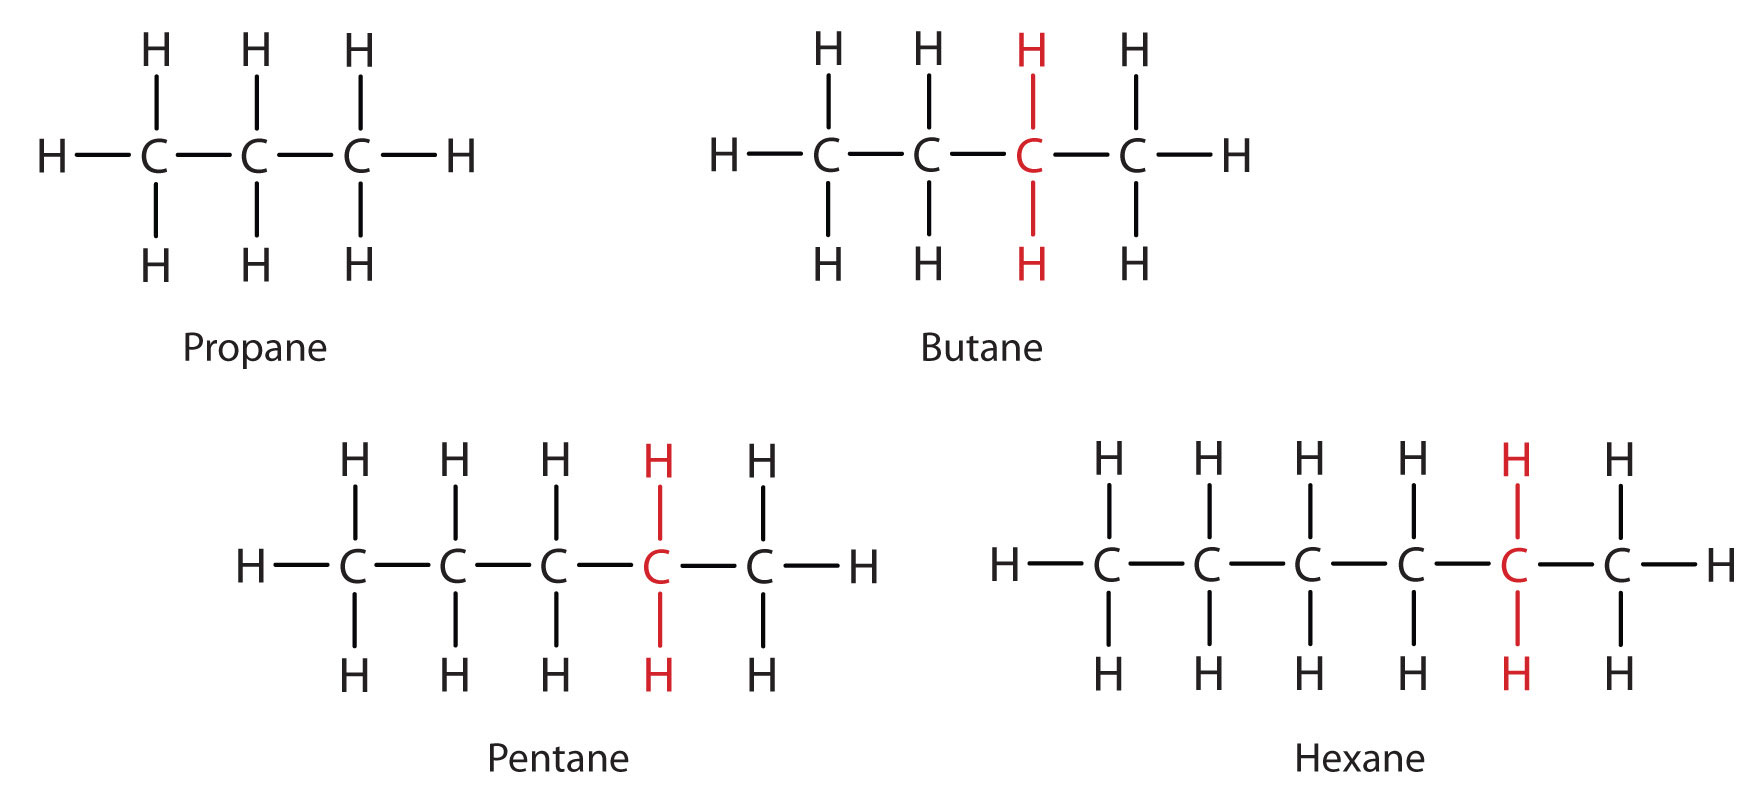 Alkane family members: Each succeeding formula has one more Carbon atom and two more Hydrogens (in red) than previous family member.